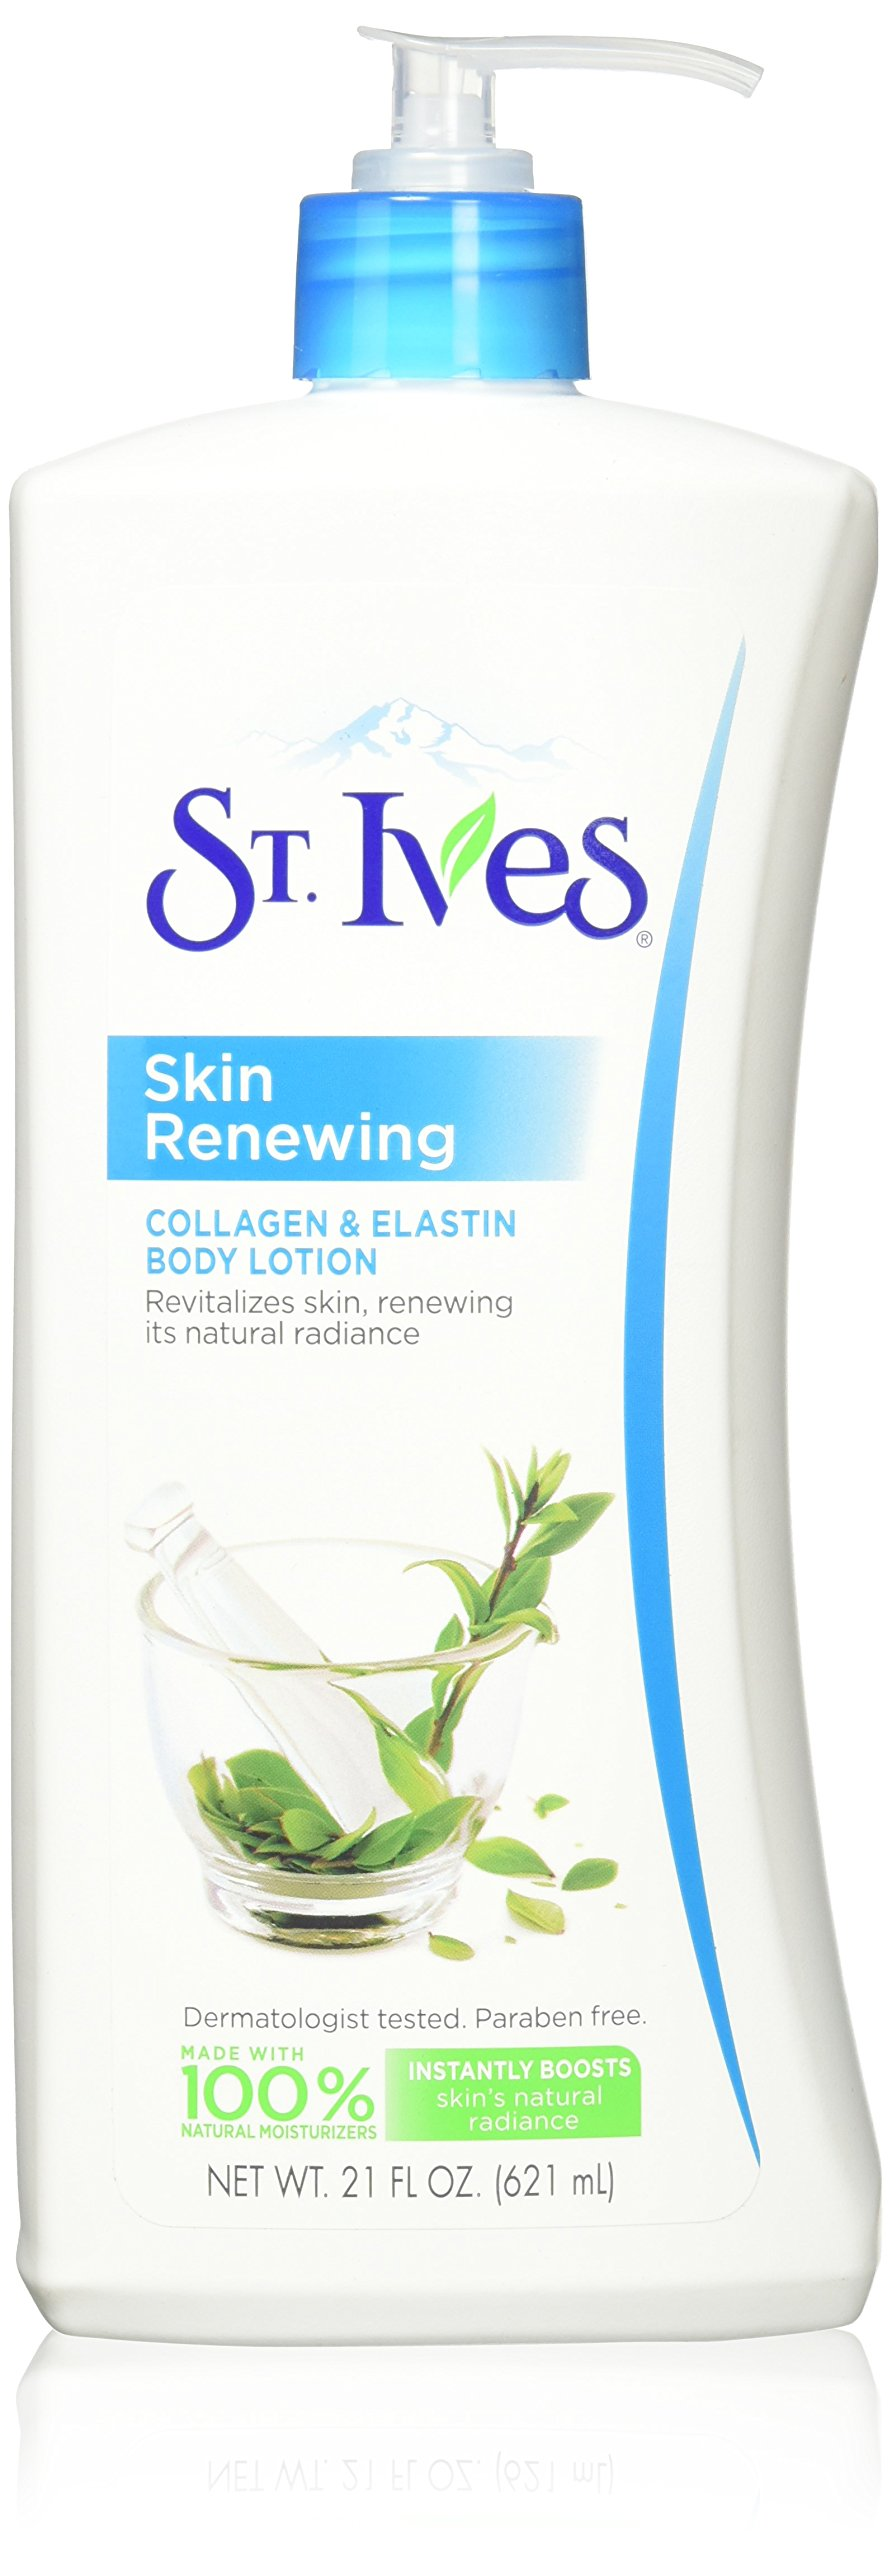 St. Ives Skin Renewing Body Lotion Collagen Elastin 21 oz(Pack of 2) by St. Ives